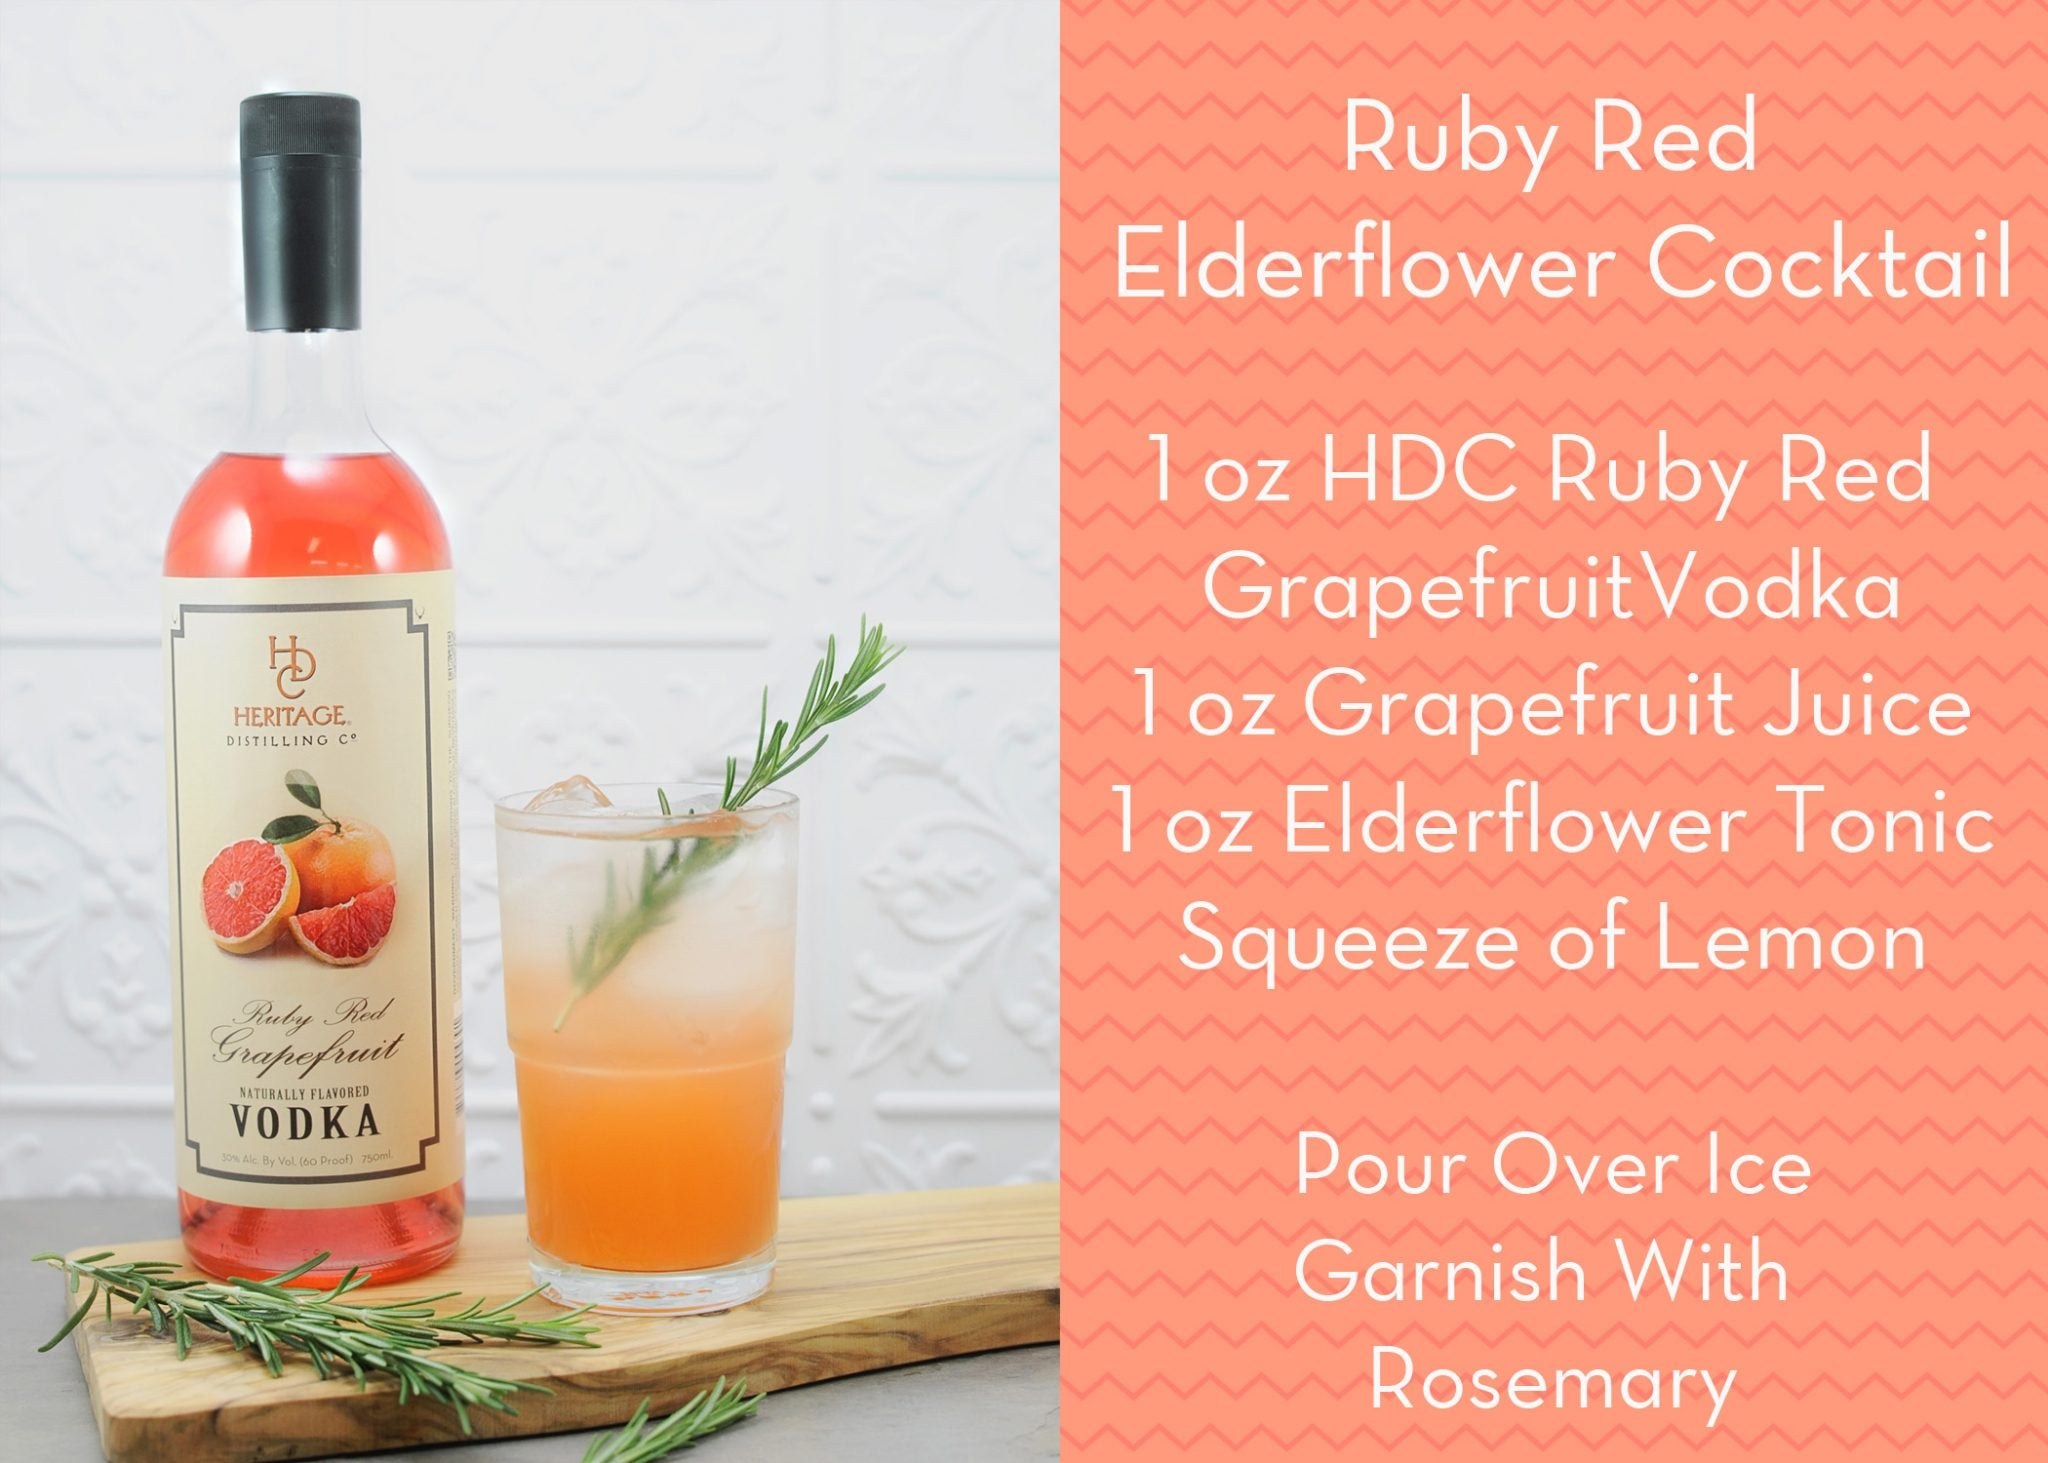 RR Elderflower Cocktail Recipe